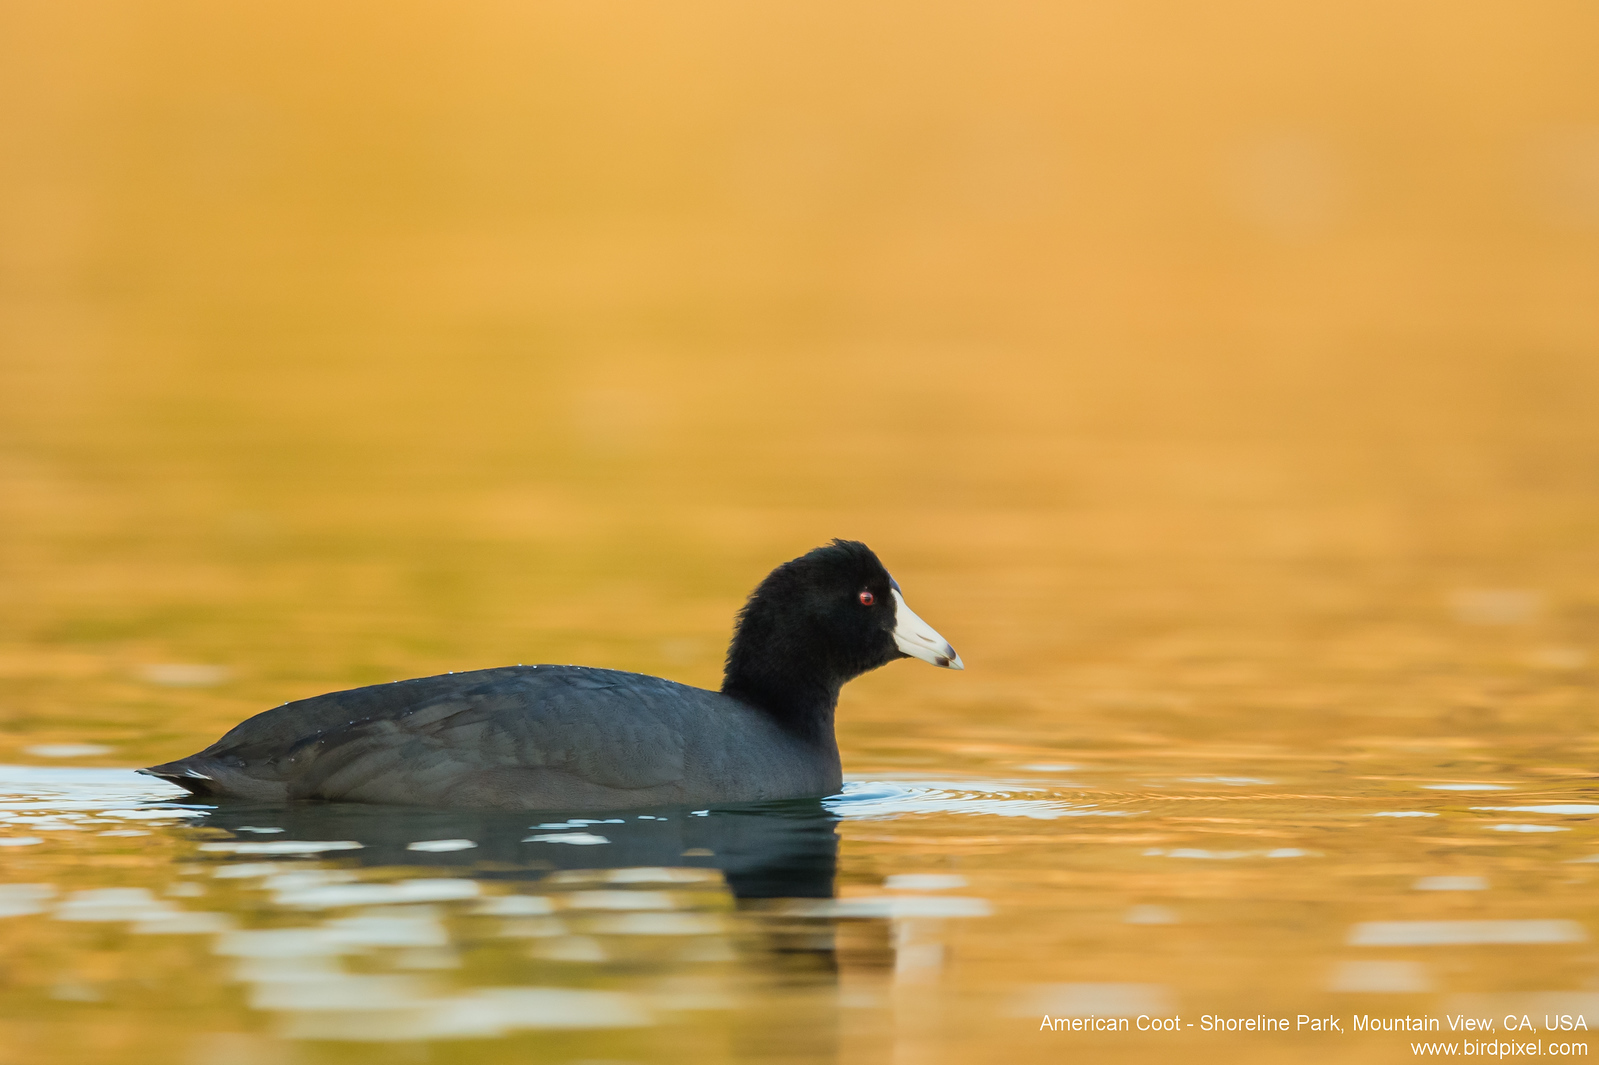 American Coot - Shoreline Park, Mountain View, CA, USA